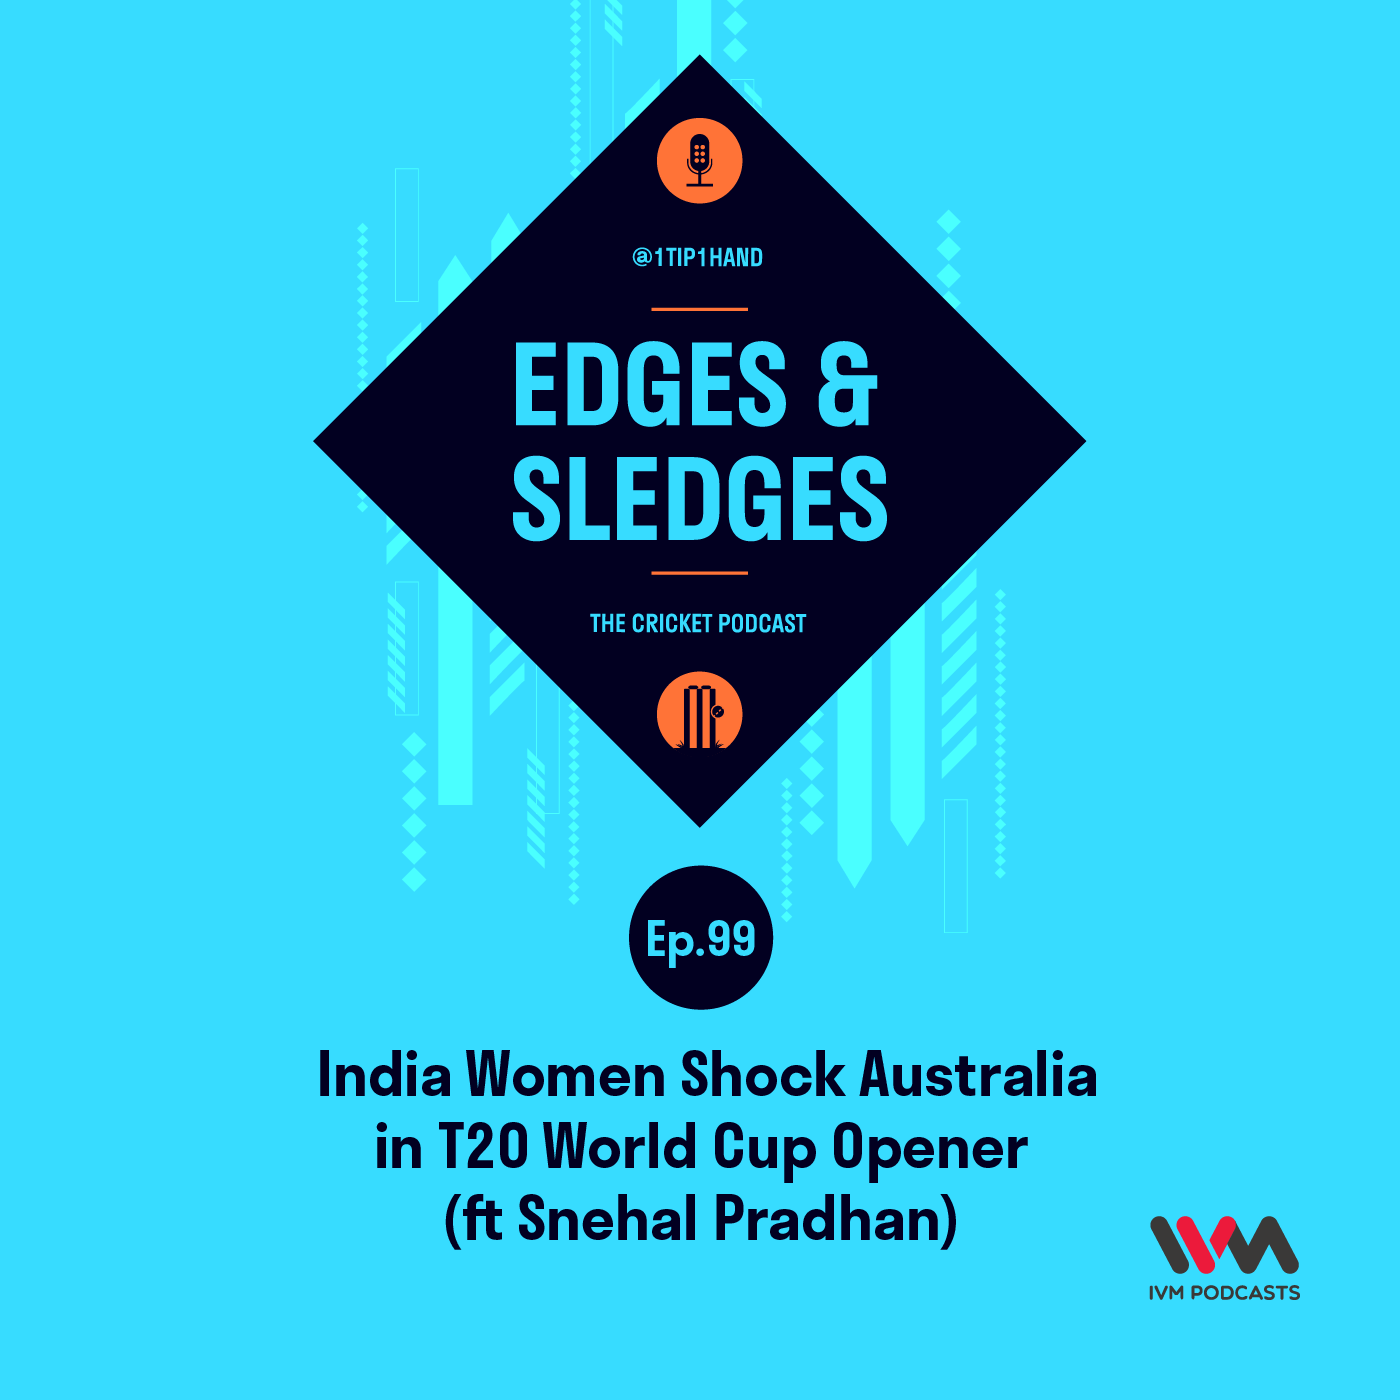 Ep. 99: India Women Shock Australia in T20 World Cup Opener (ft Snehal Pradhan)